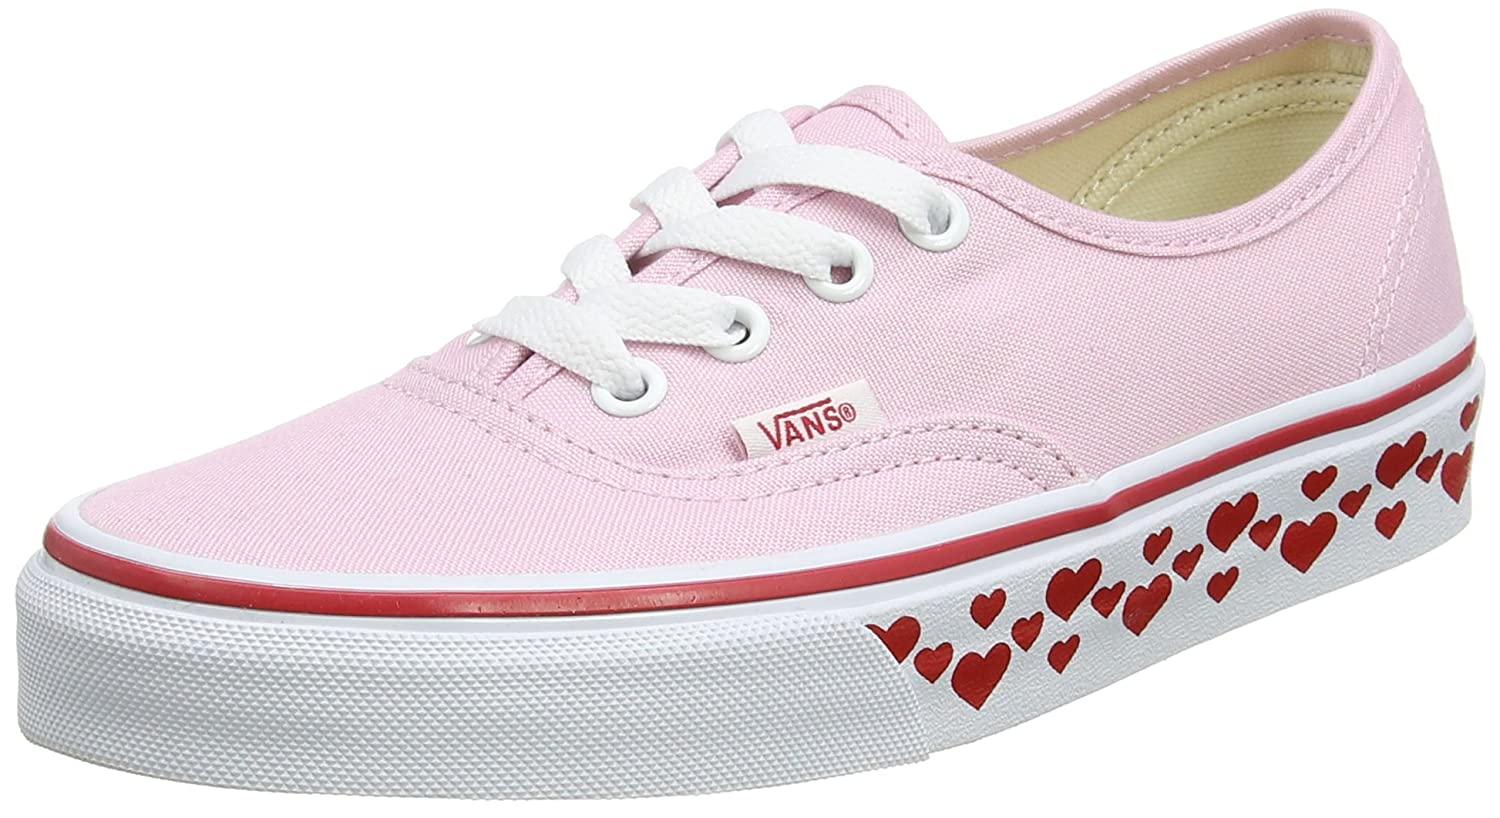 [バンズ] VANS VANS AUTHENTIC VEE3 B01I2EQ46Y 9 B(M) US Women / 7.5 D(M) US Men|Pink Lady/Red Pink Lady/Red 9 B(M) US Women / 7.5 D(M) US Men